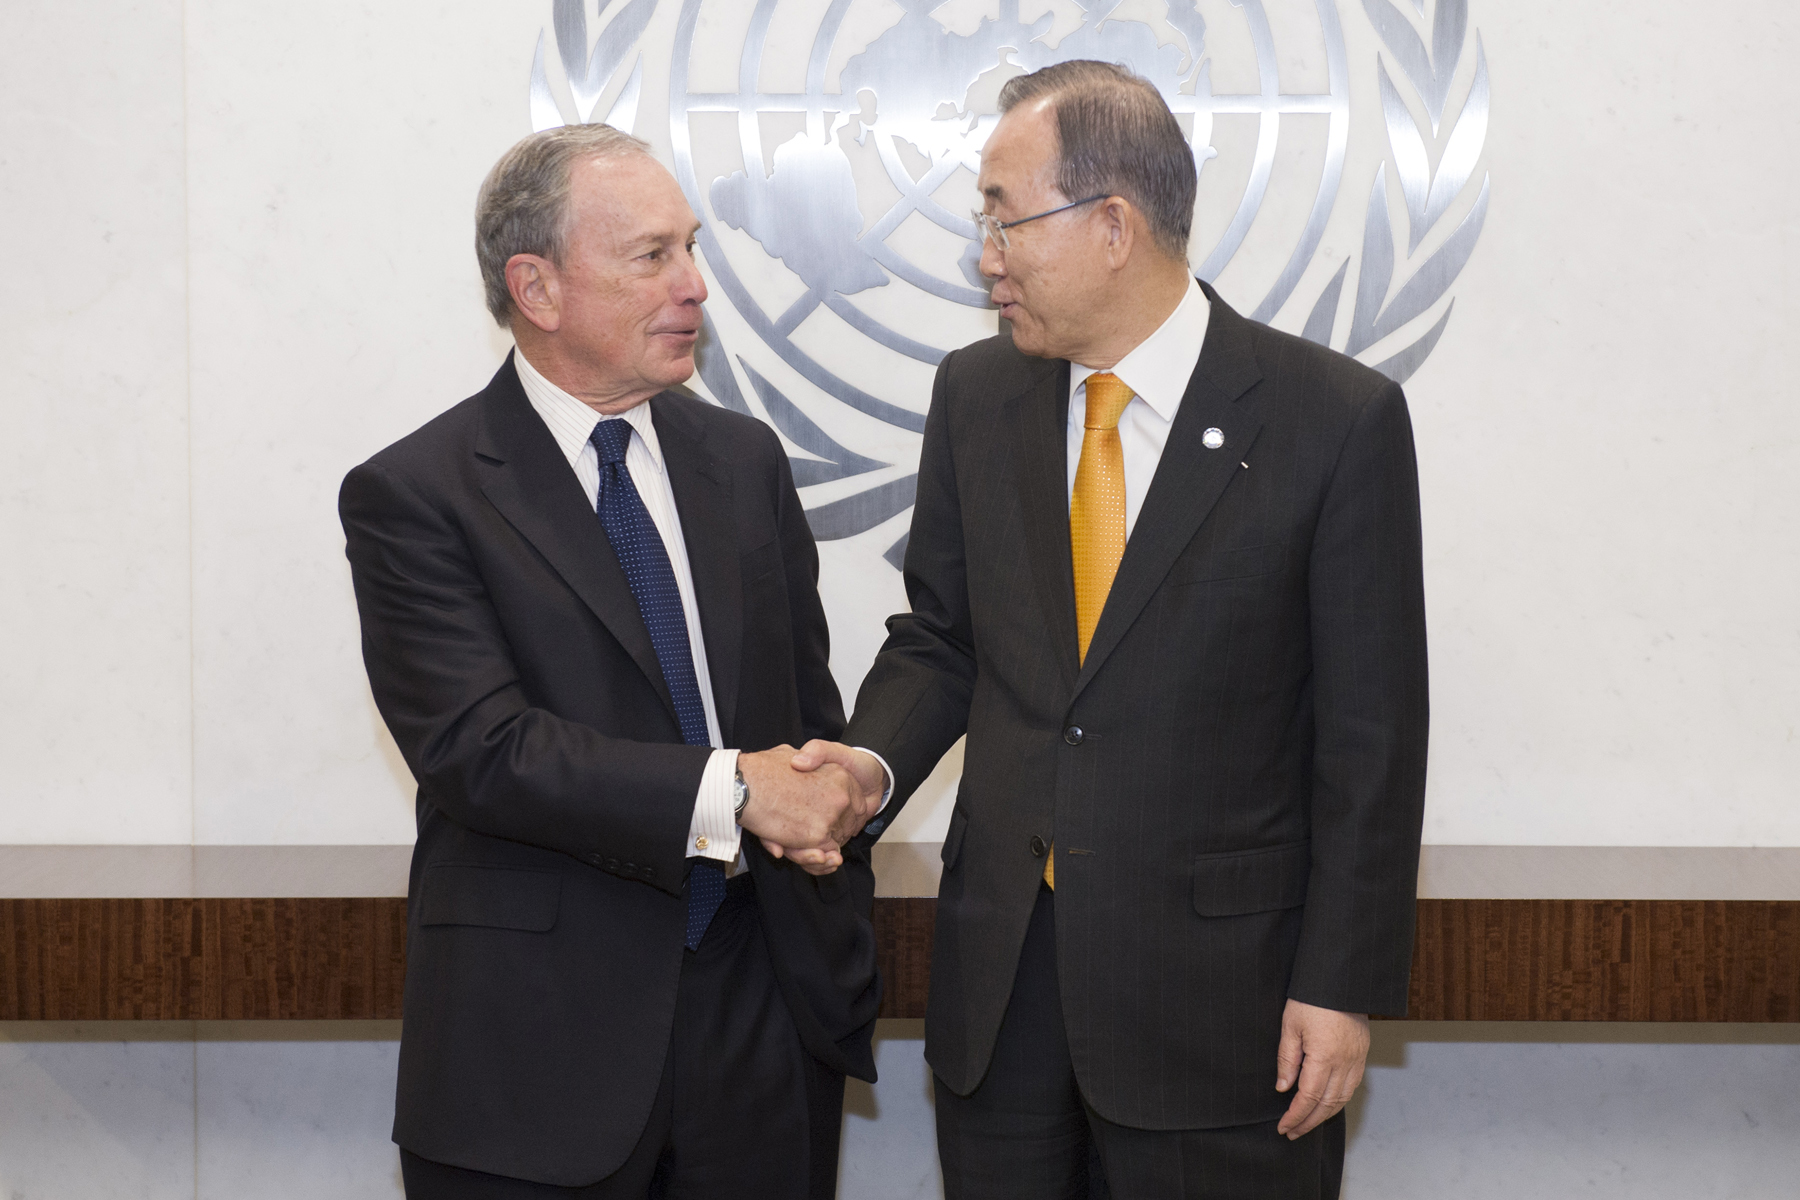 Secretary-General Ban Ki-moon (right) meets with Mr. Michael Bloomberg, Special Envoy of the Secretary-General for Cities and Climate Change.